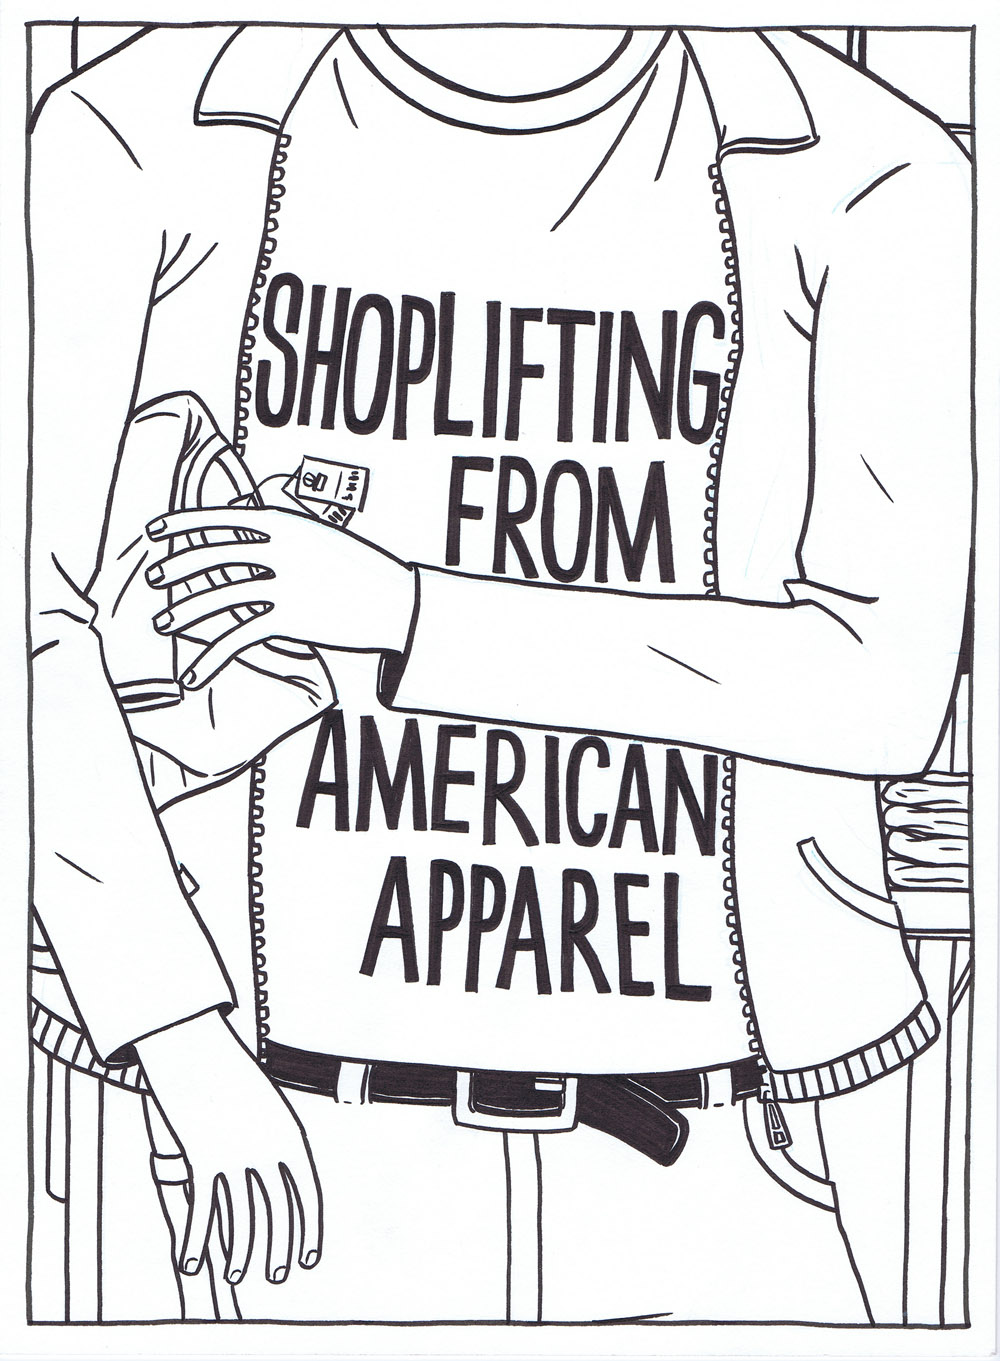 Shoplifting from American Apparel - film poster